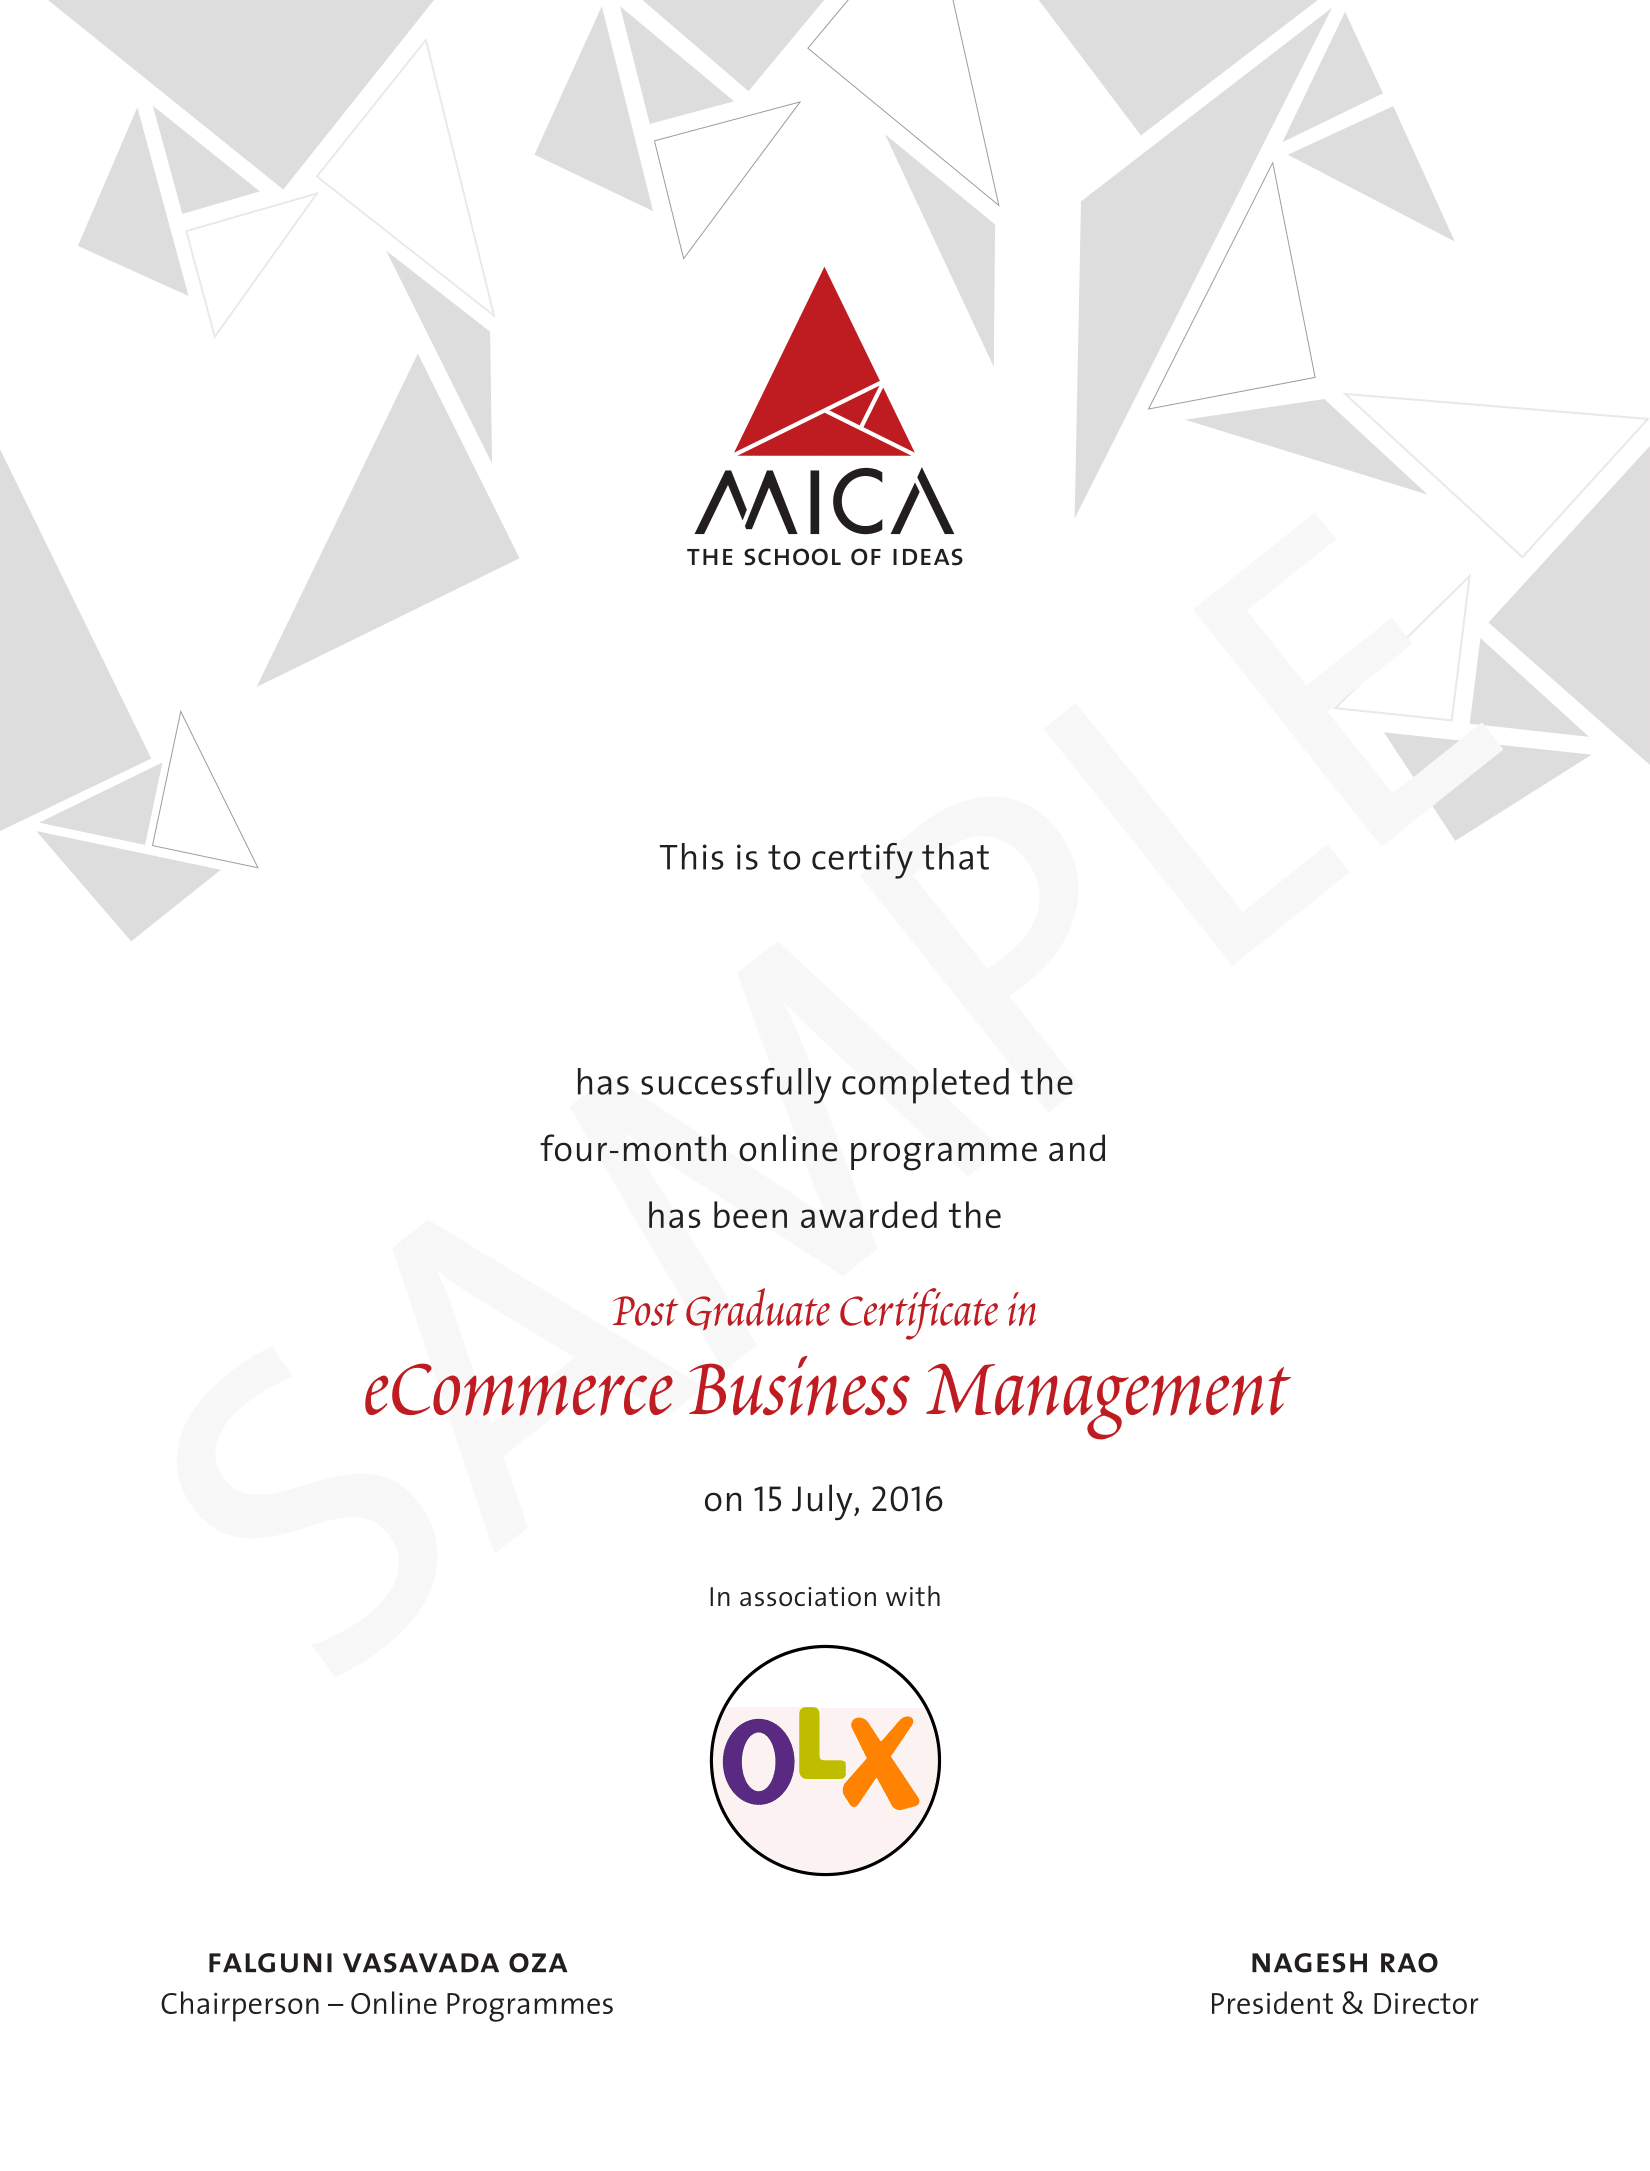 E Commerce Business Management Certification Course From Mica